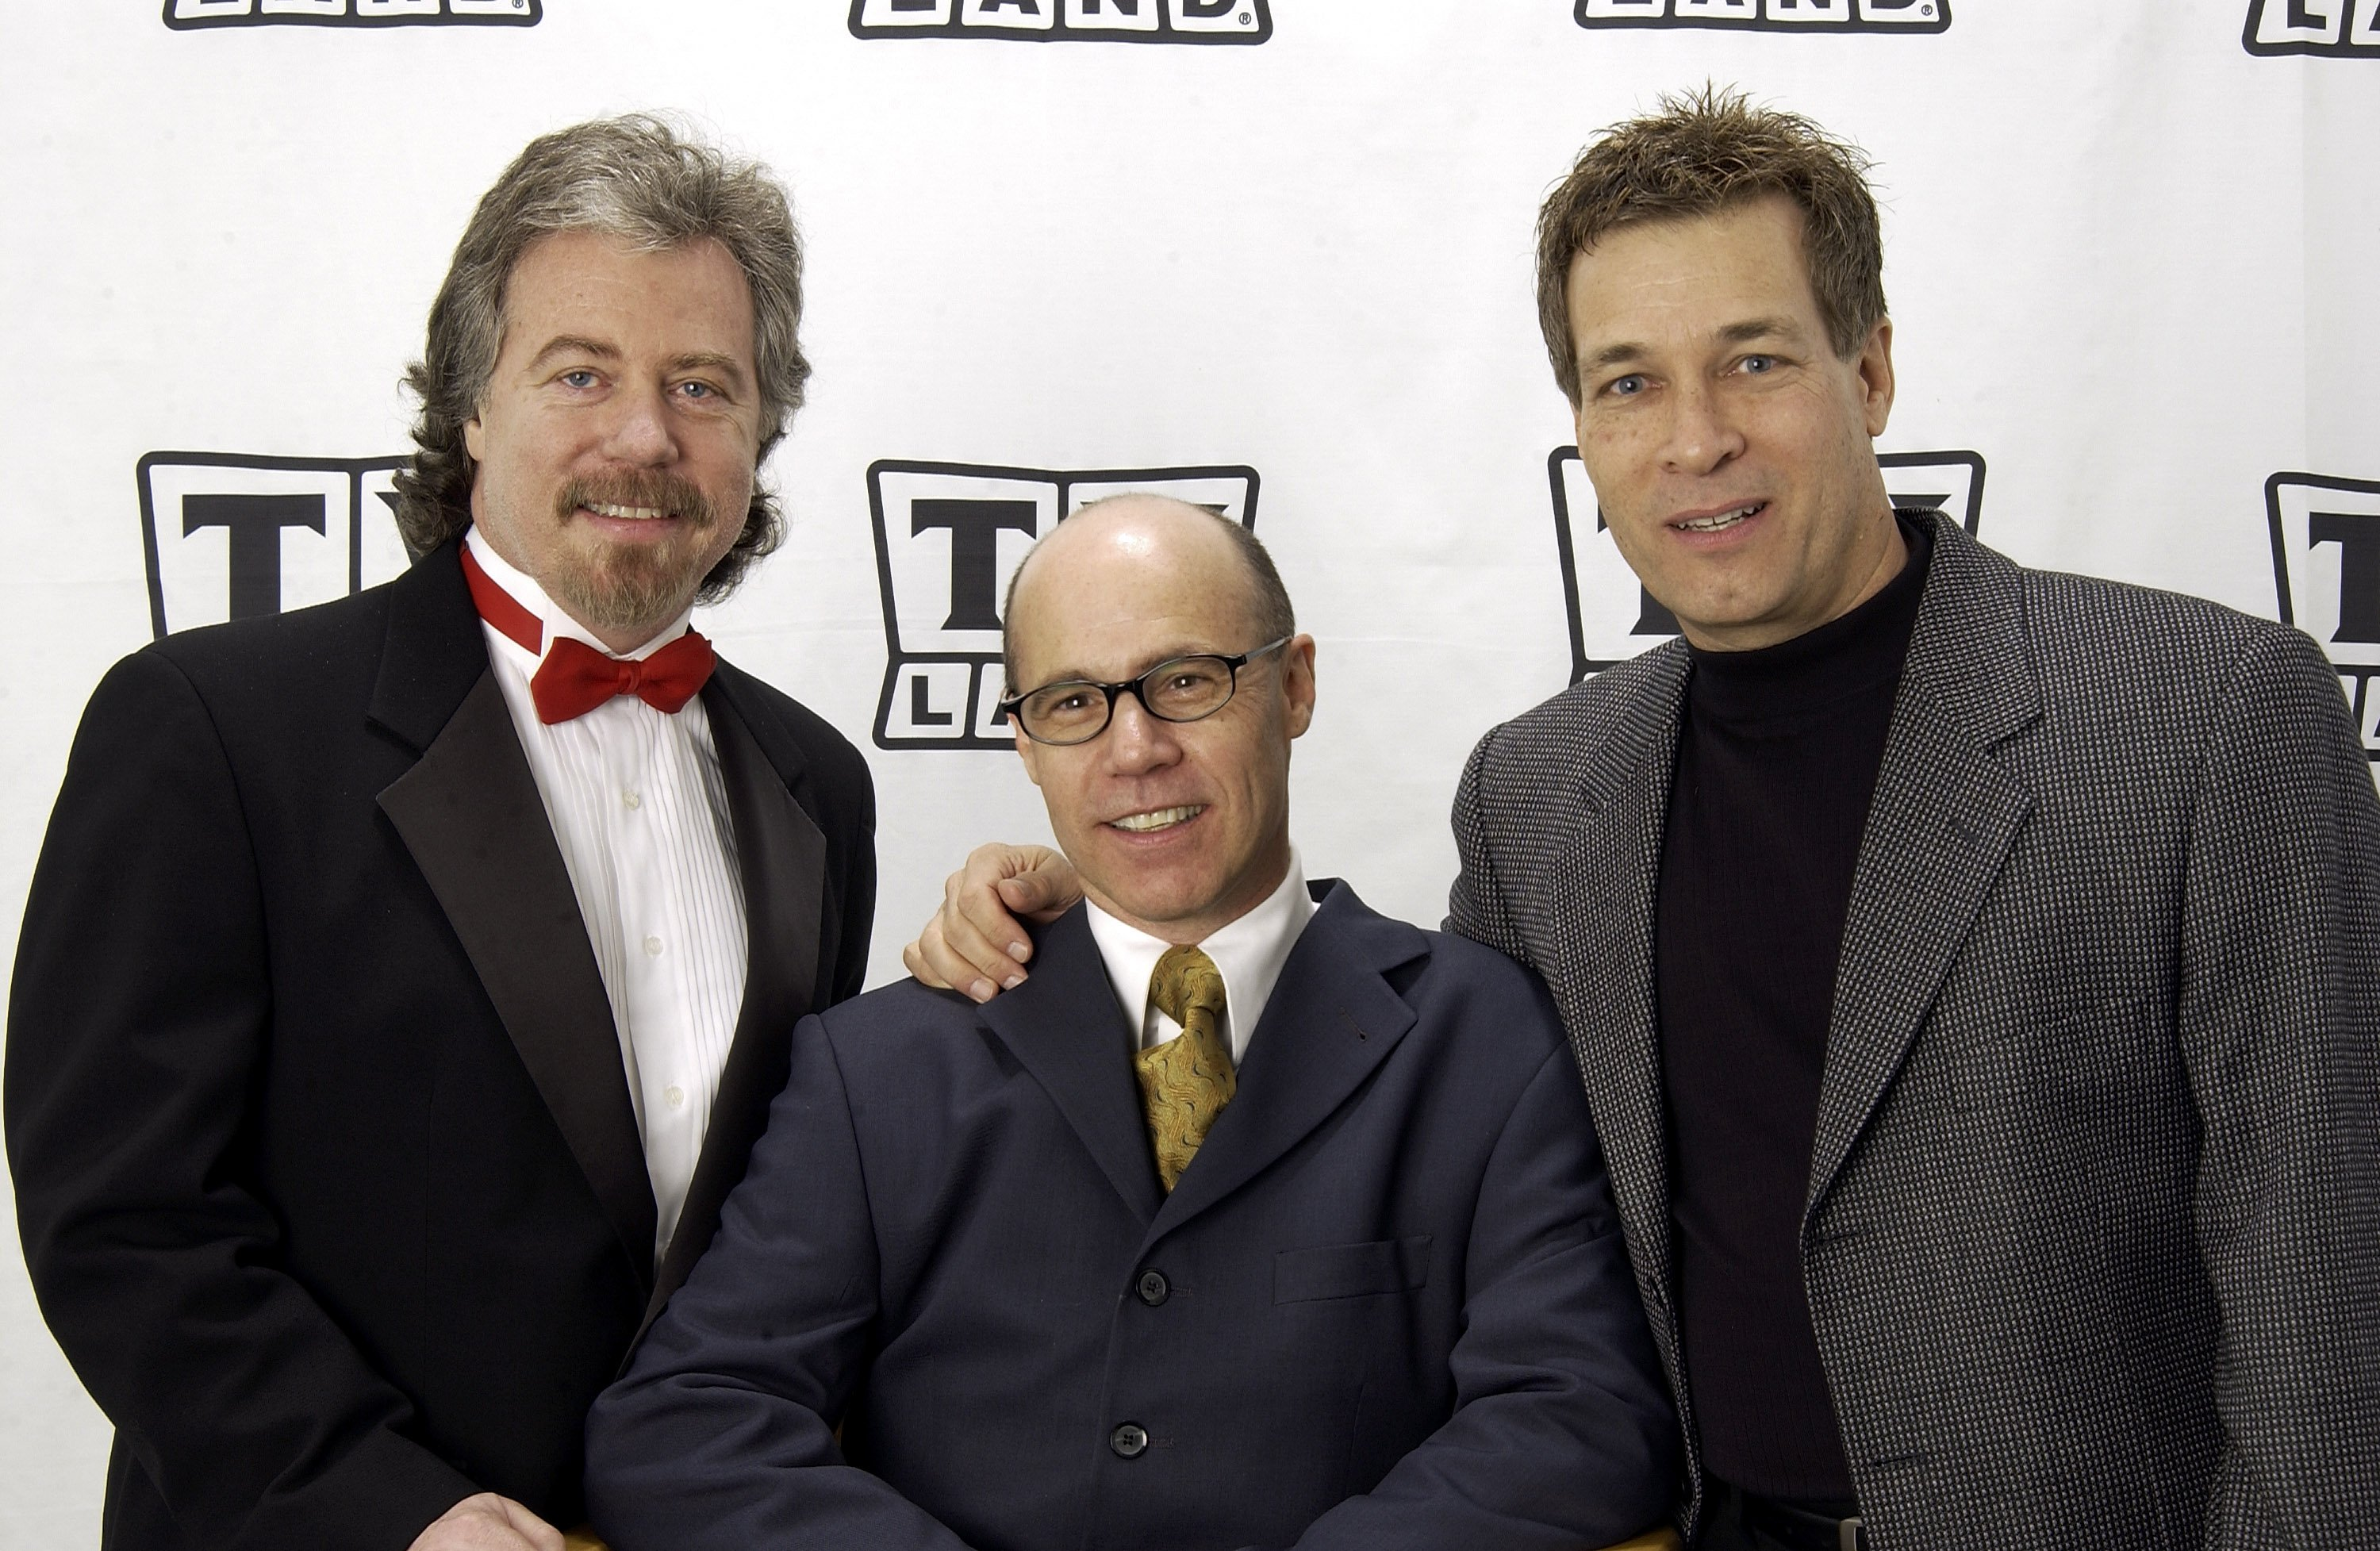 (From left to right) Stanley Livingston, Barry Livingston, and Don Grady pose together at the TV Land Awards in Hollywood, California on March 2, 2003 | Photo: Getty Images